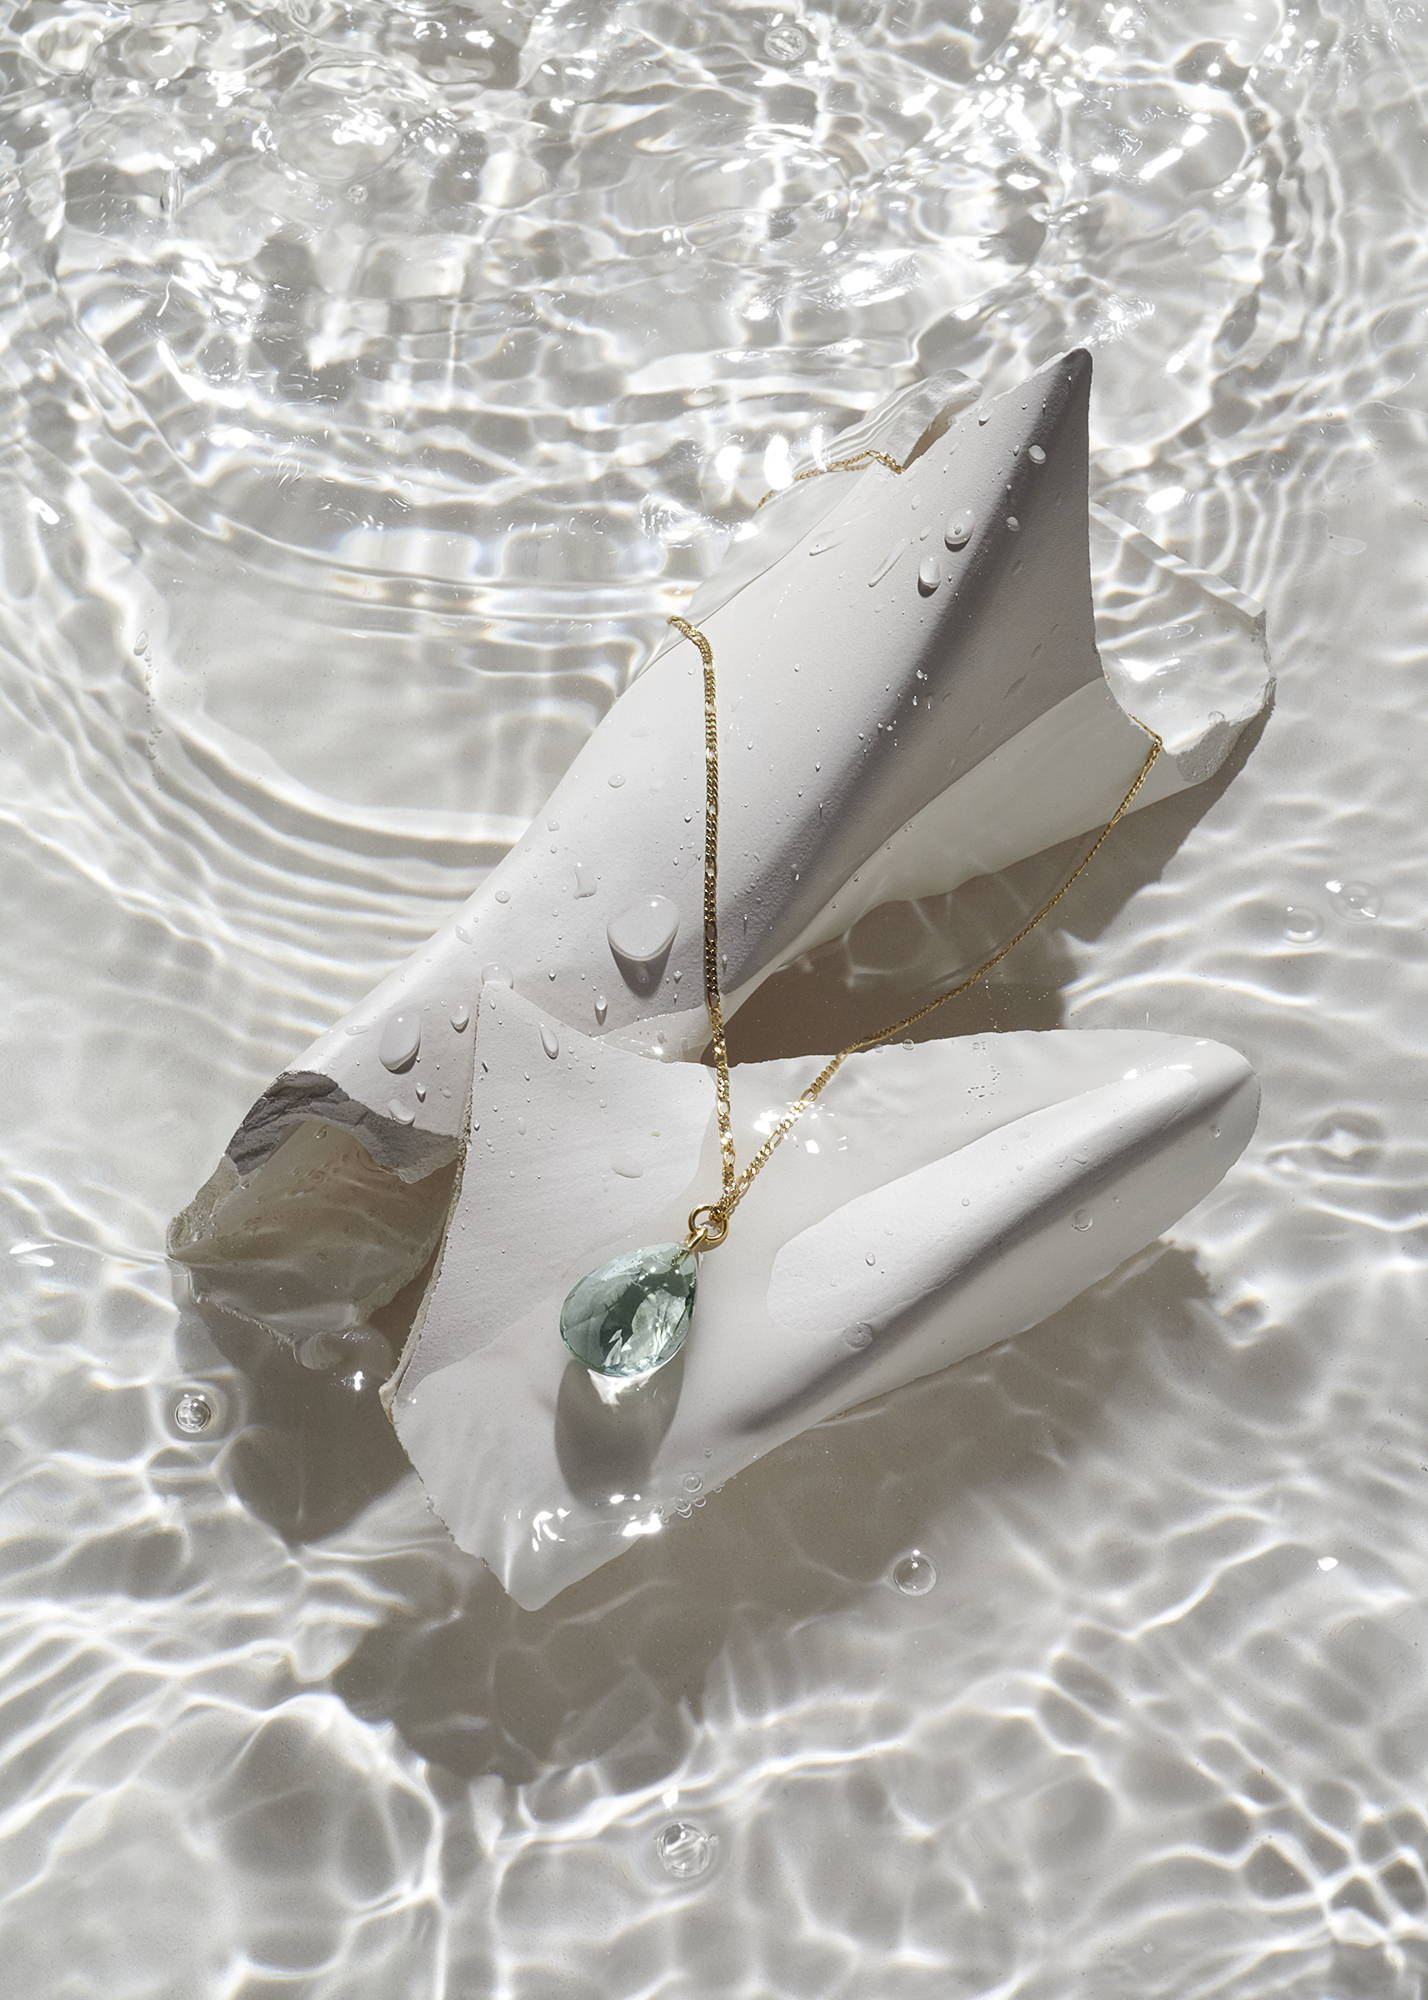 prasiolite pendant on 14k gold figaro chain. sustainable jewelry made in germany